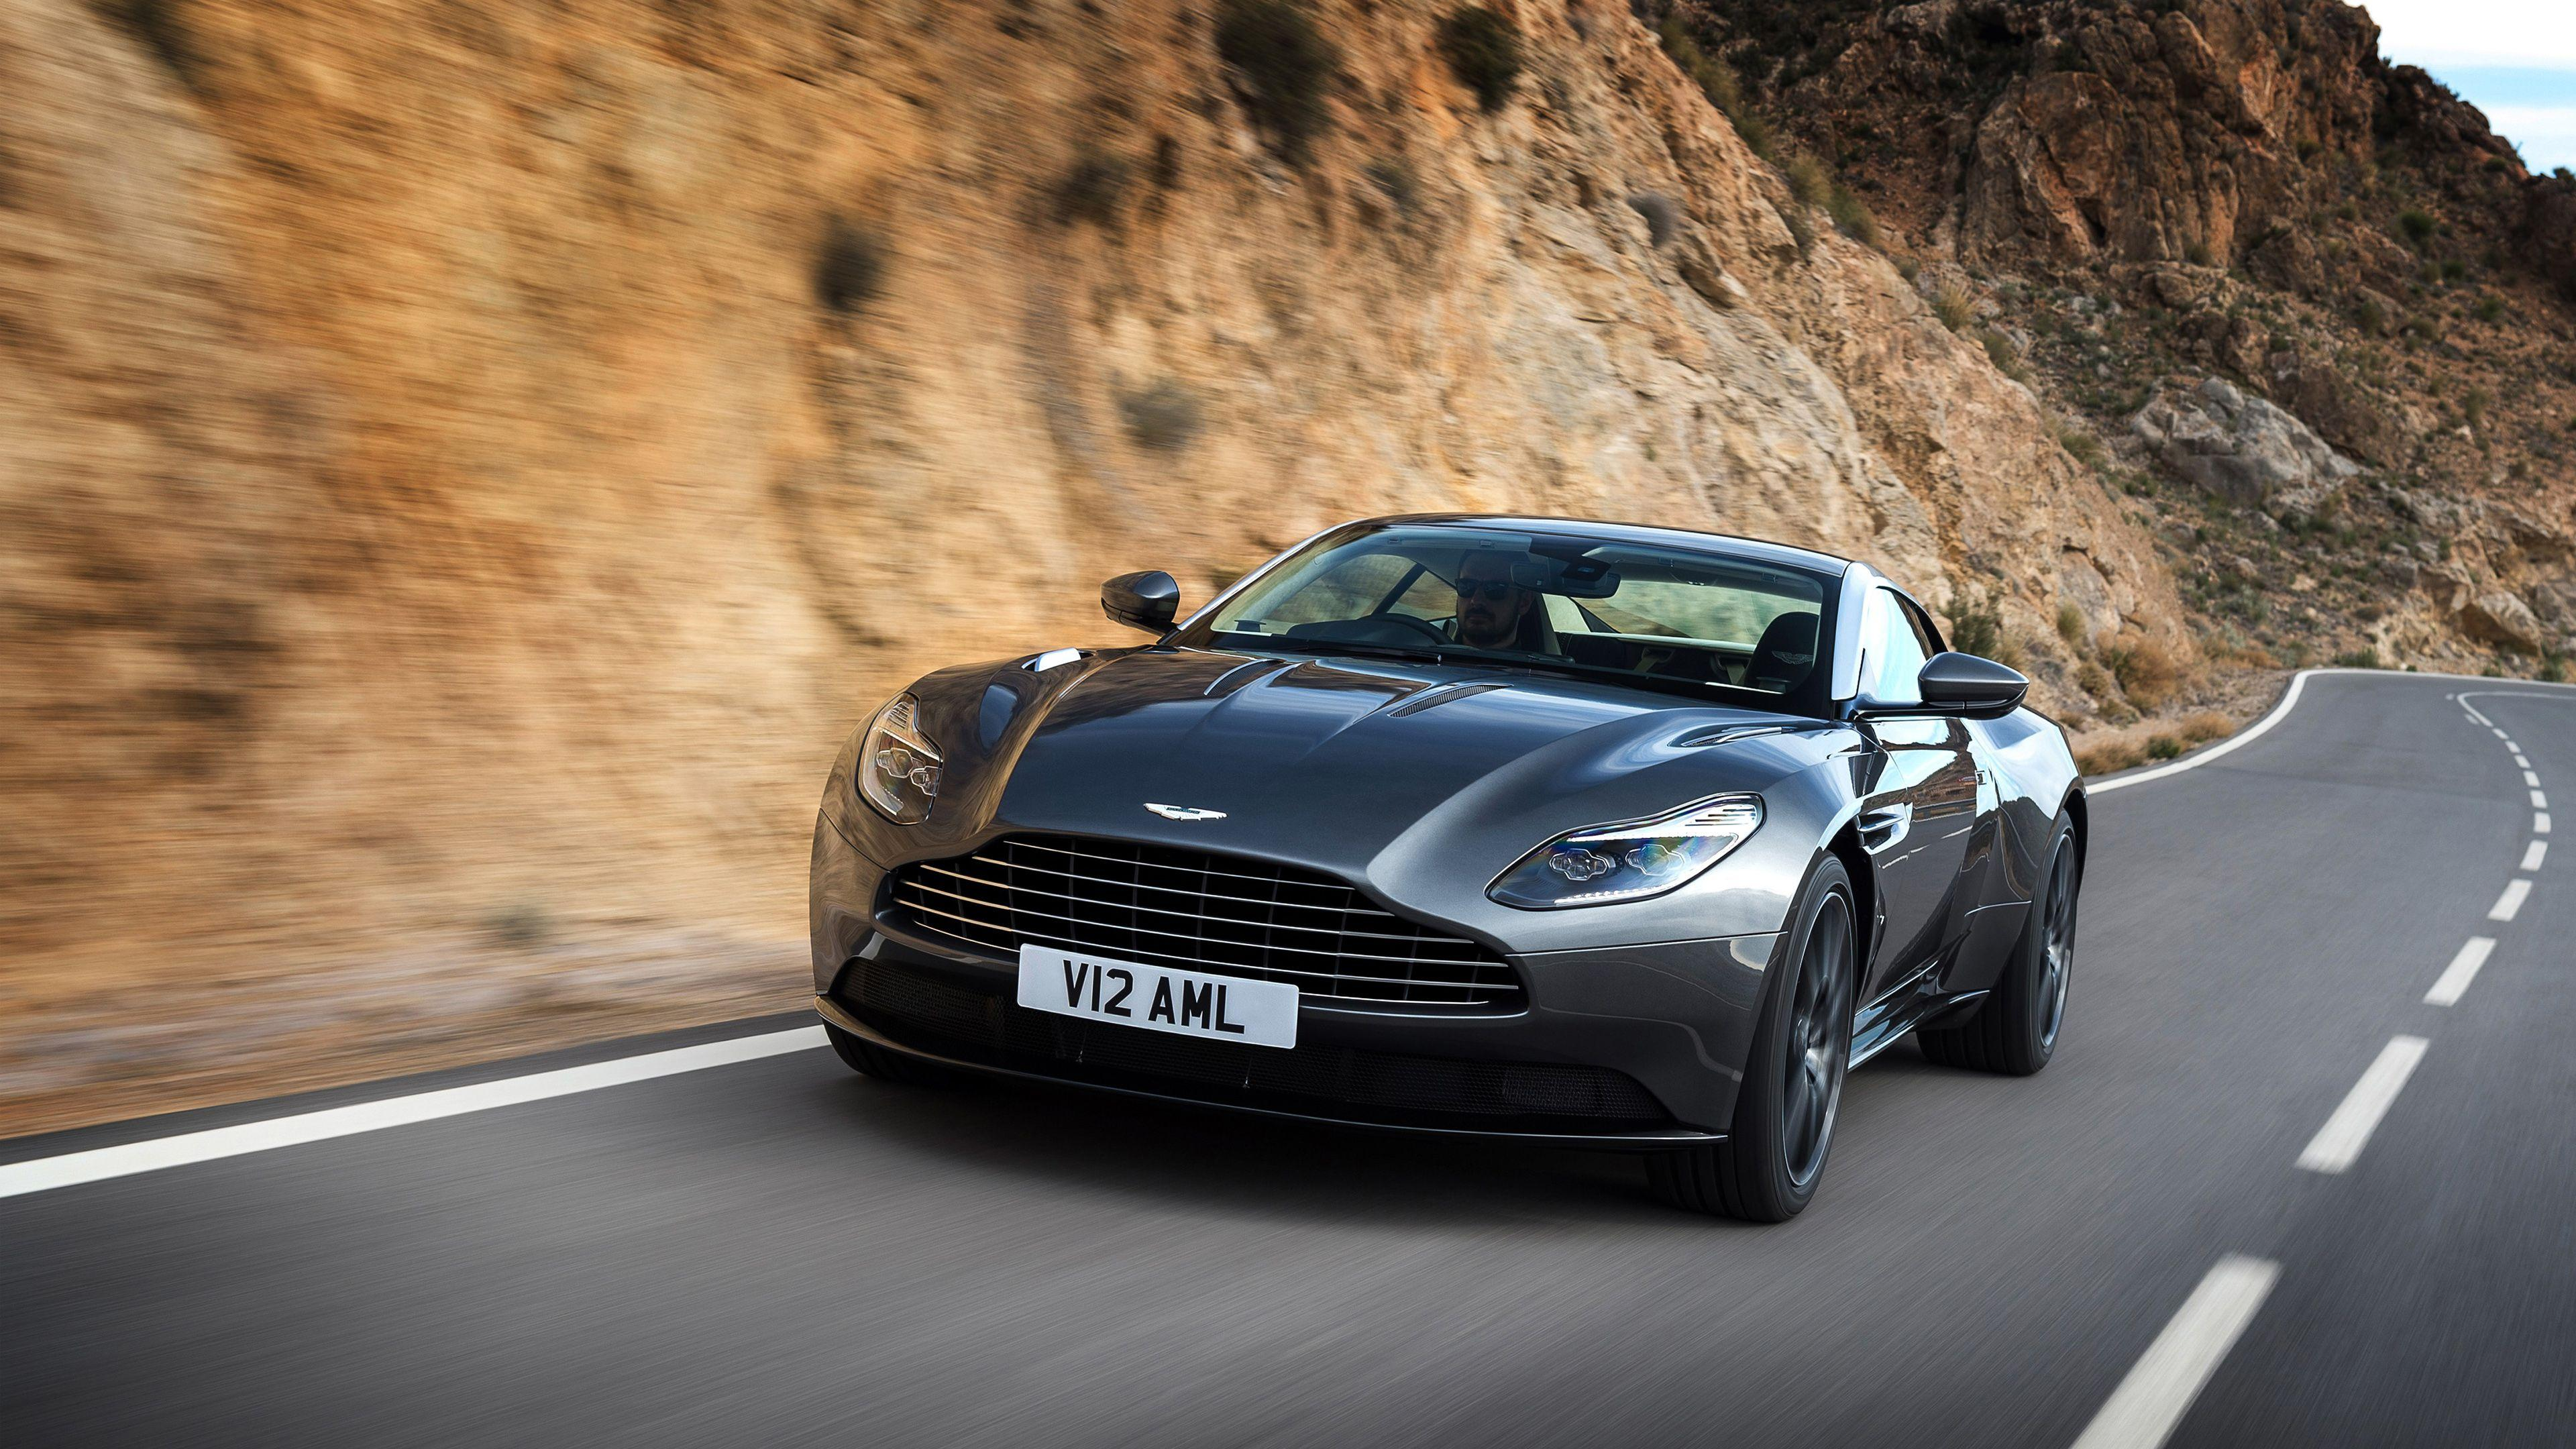 aston martin db11 wallpapers - wallpaper cave